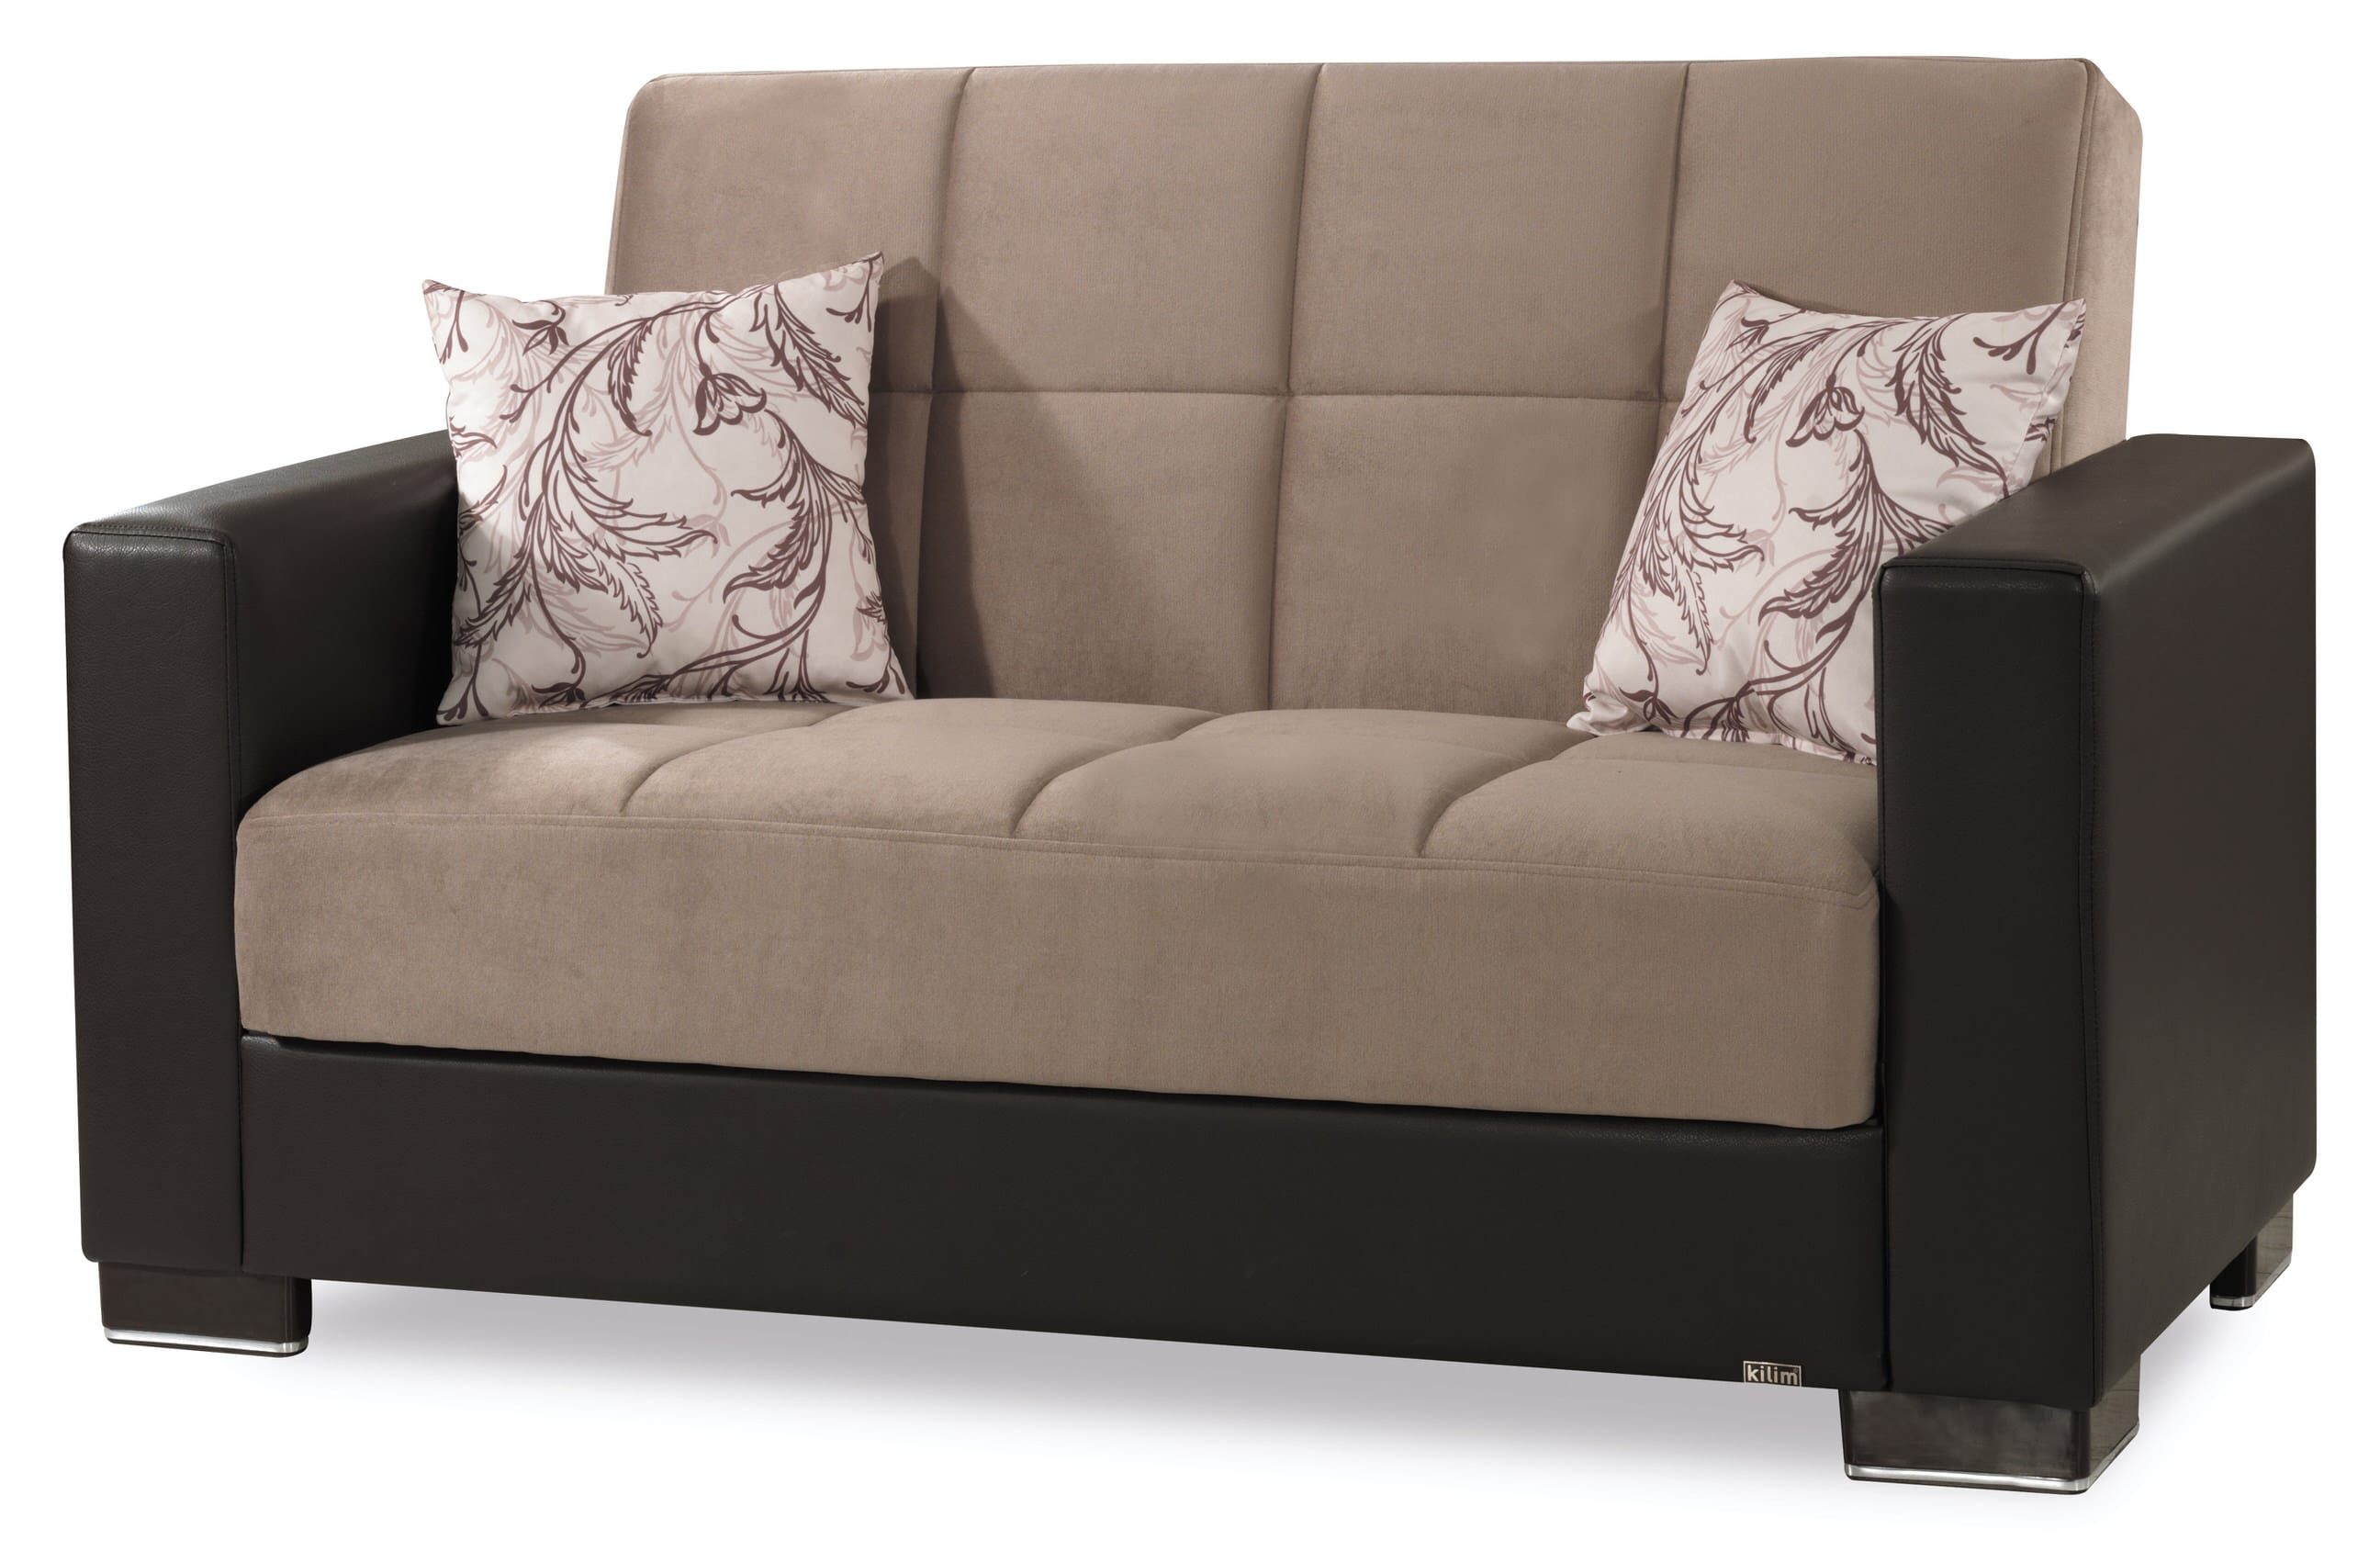 Armada Sand Convertible Loveseat by Casamode